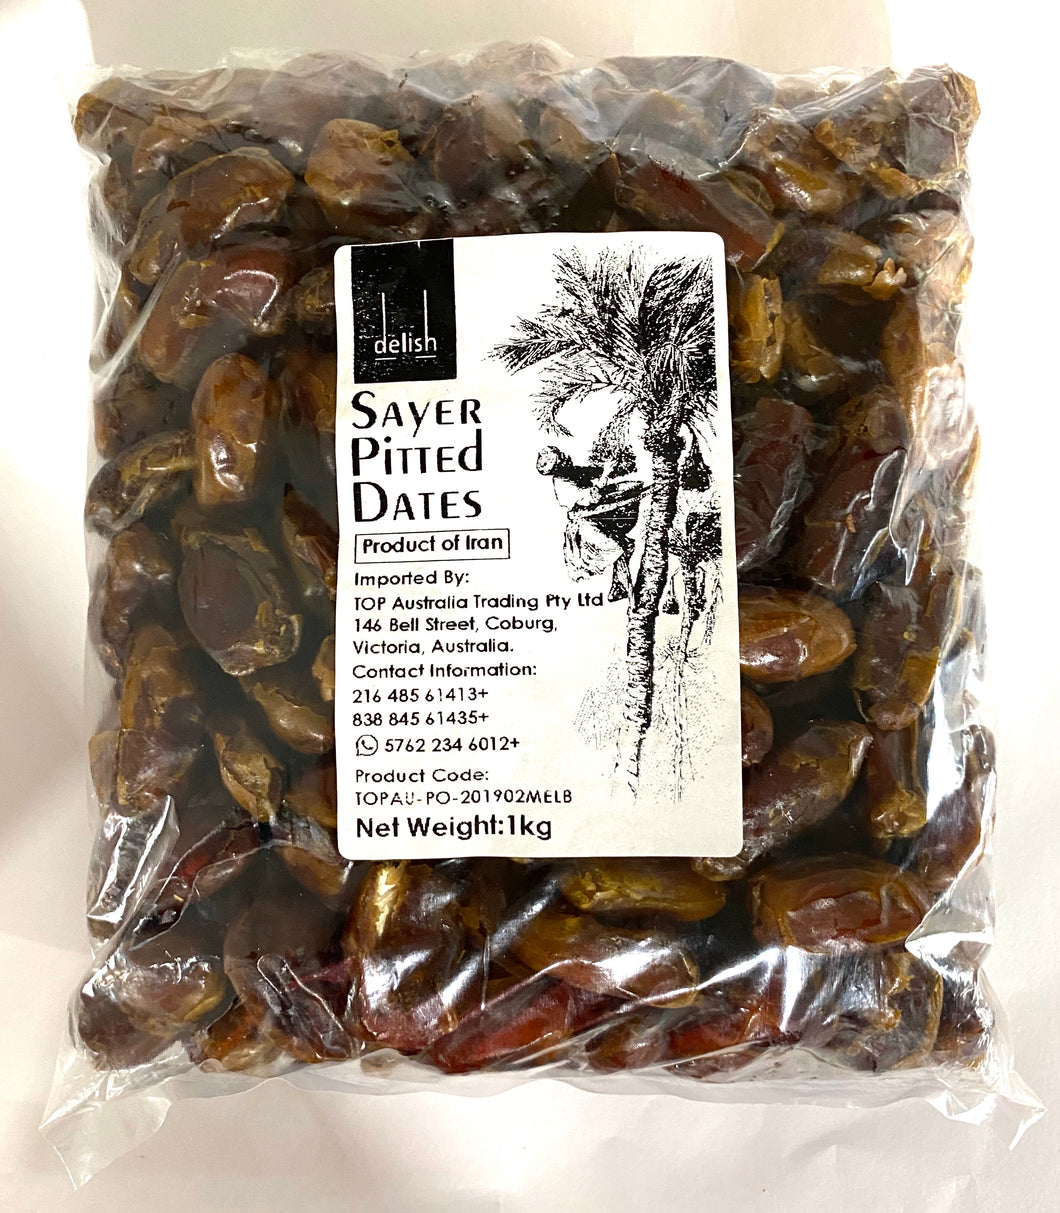 Dates - Premium Sayer Pitted Dates by Delish Food 1kg